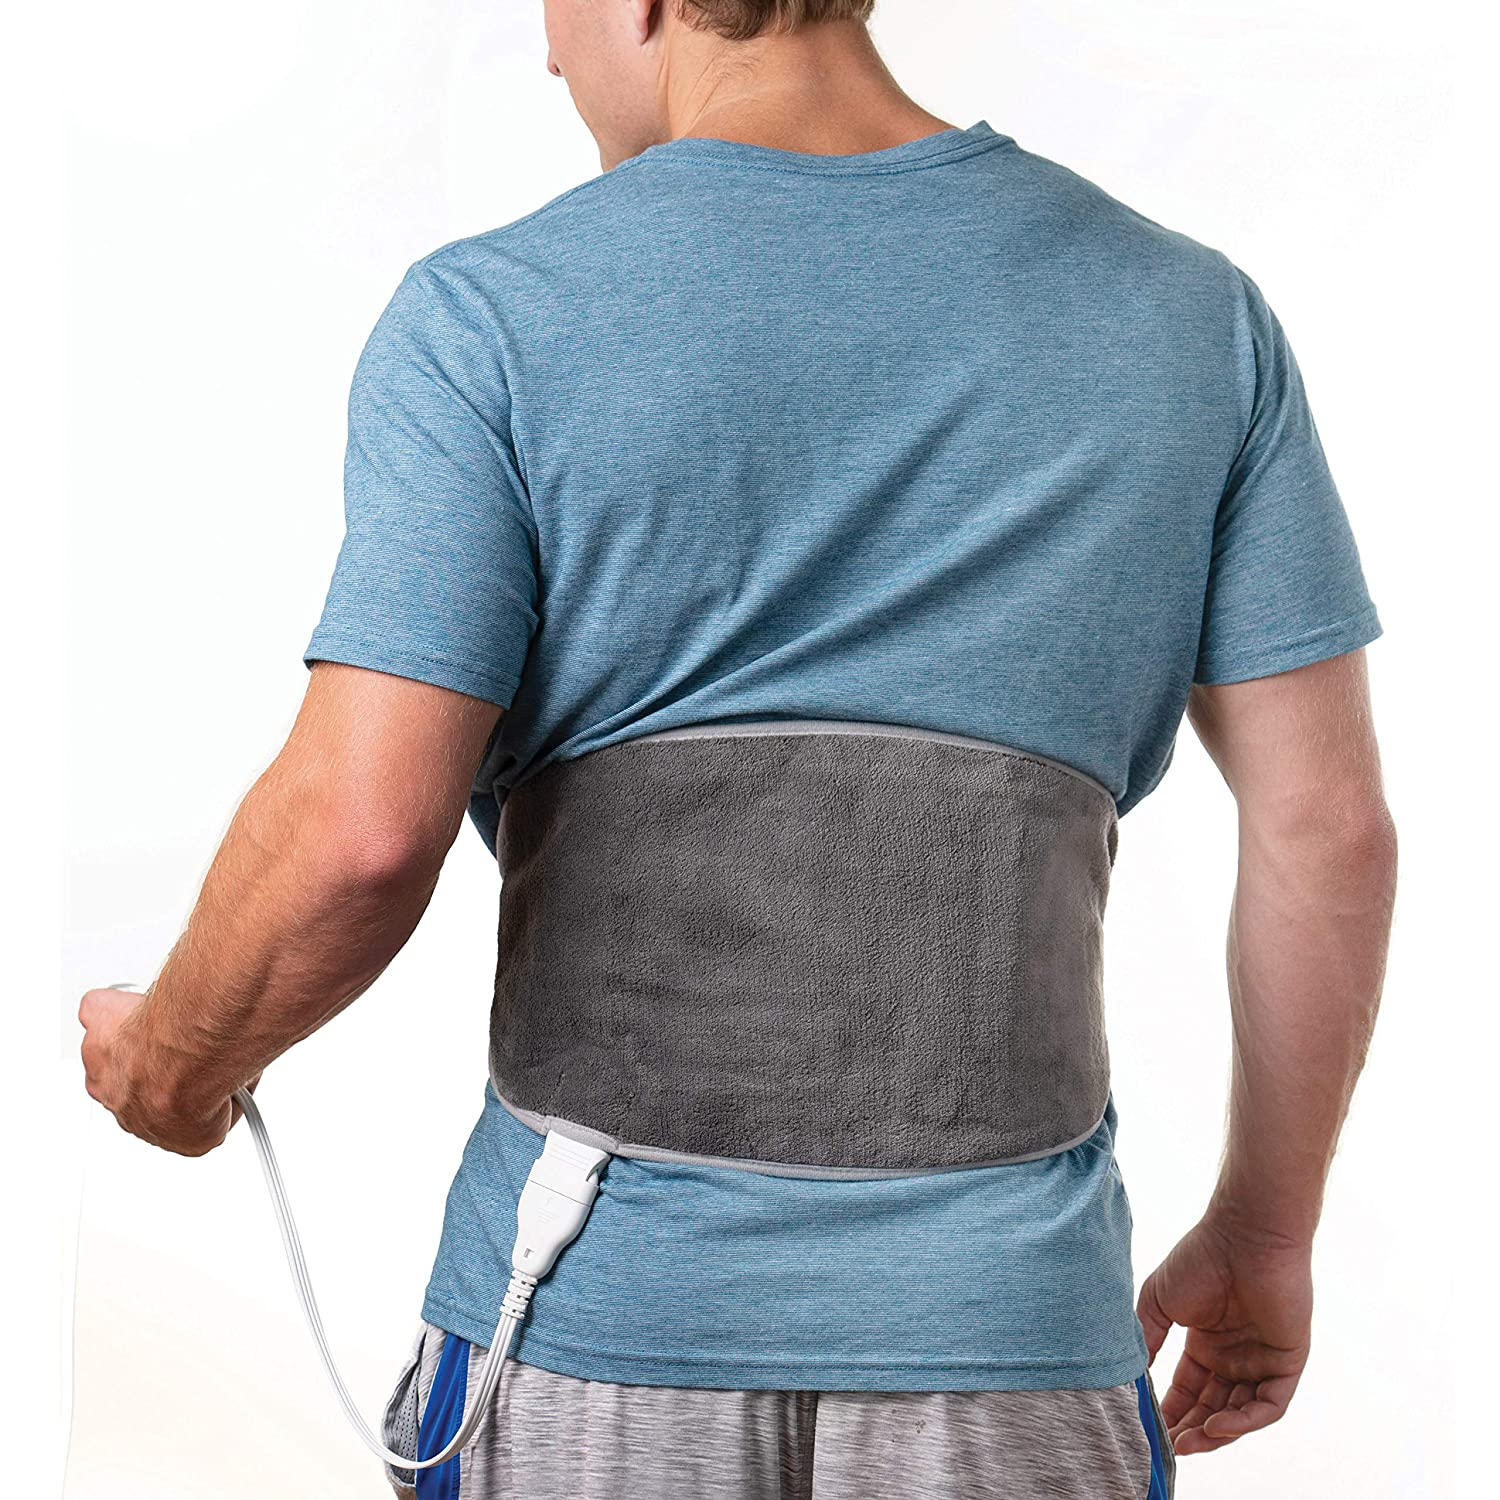 Pure Enrichment PureRelief Lumbar & Abdominal Heat Pad - Fast-Heating Technology with 4 Heat Settings, Adjustable Belt, Hot/Cold Gel Pack & Storage Bag - Ideal for Back Pain & Abdominal Cramps, Gray